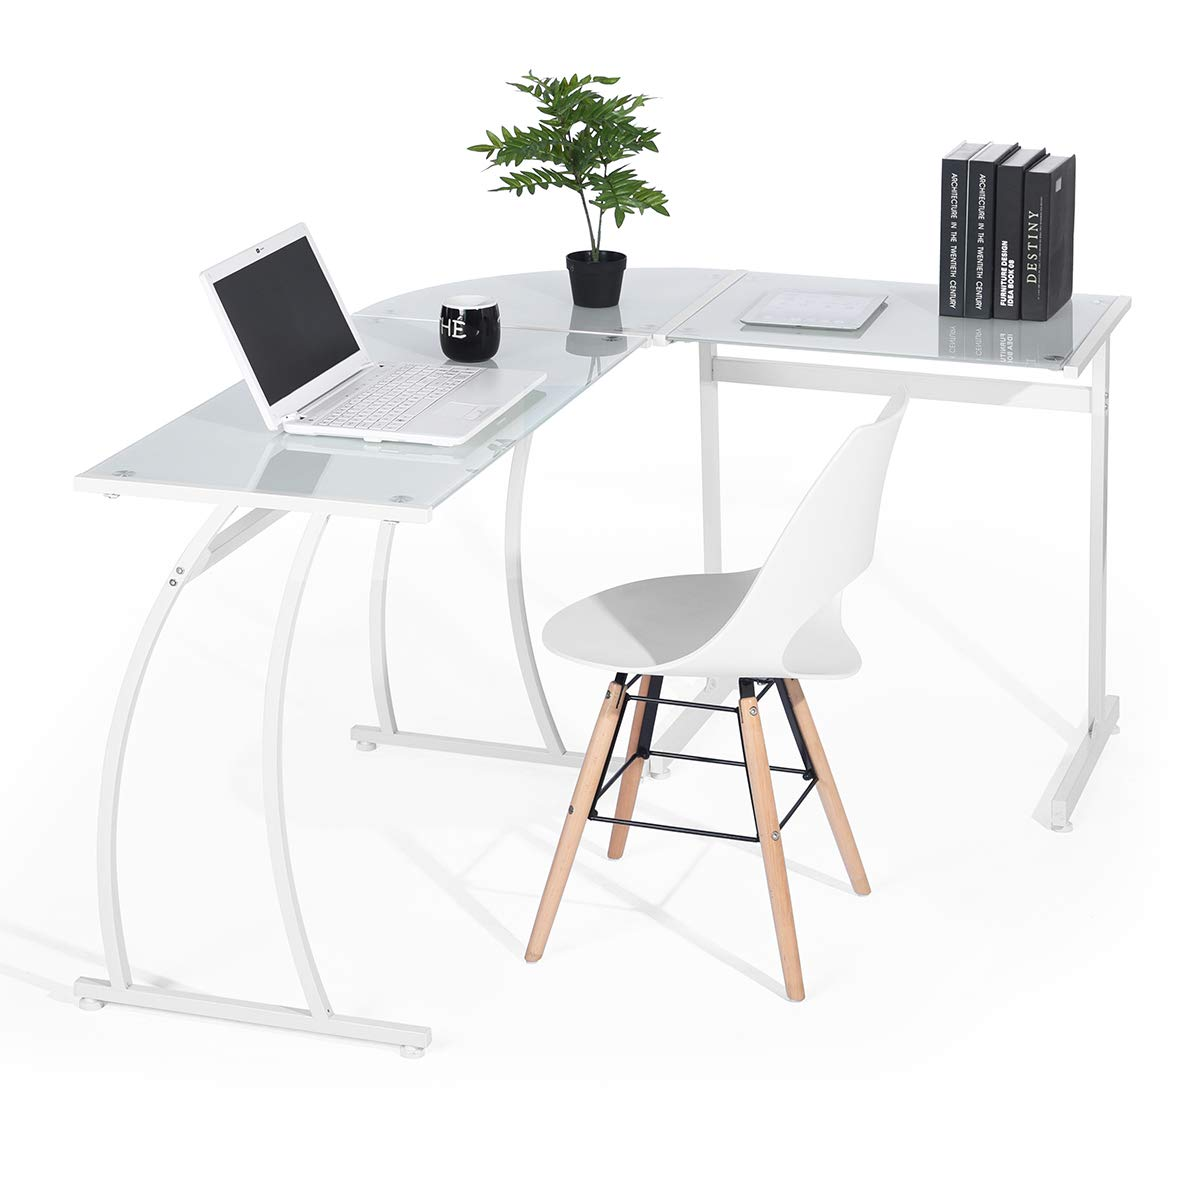 GreenForest L Shape Corner Computer Desk PC Table Workstation 3-Piece for Home Office Study,White with White Glass by GreenForest